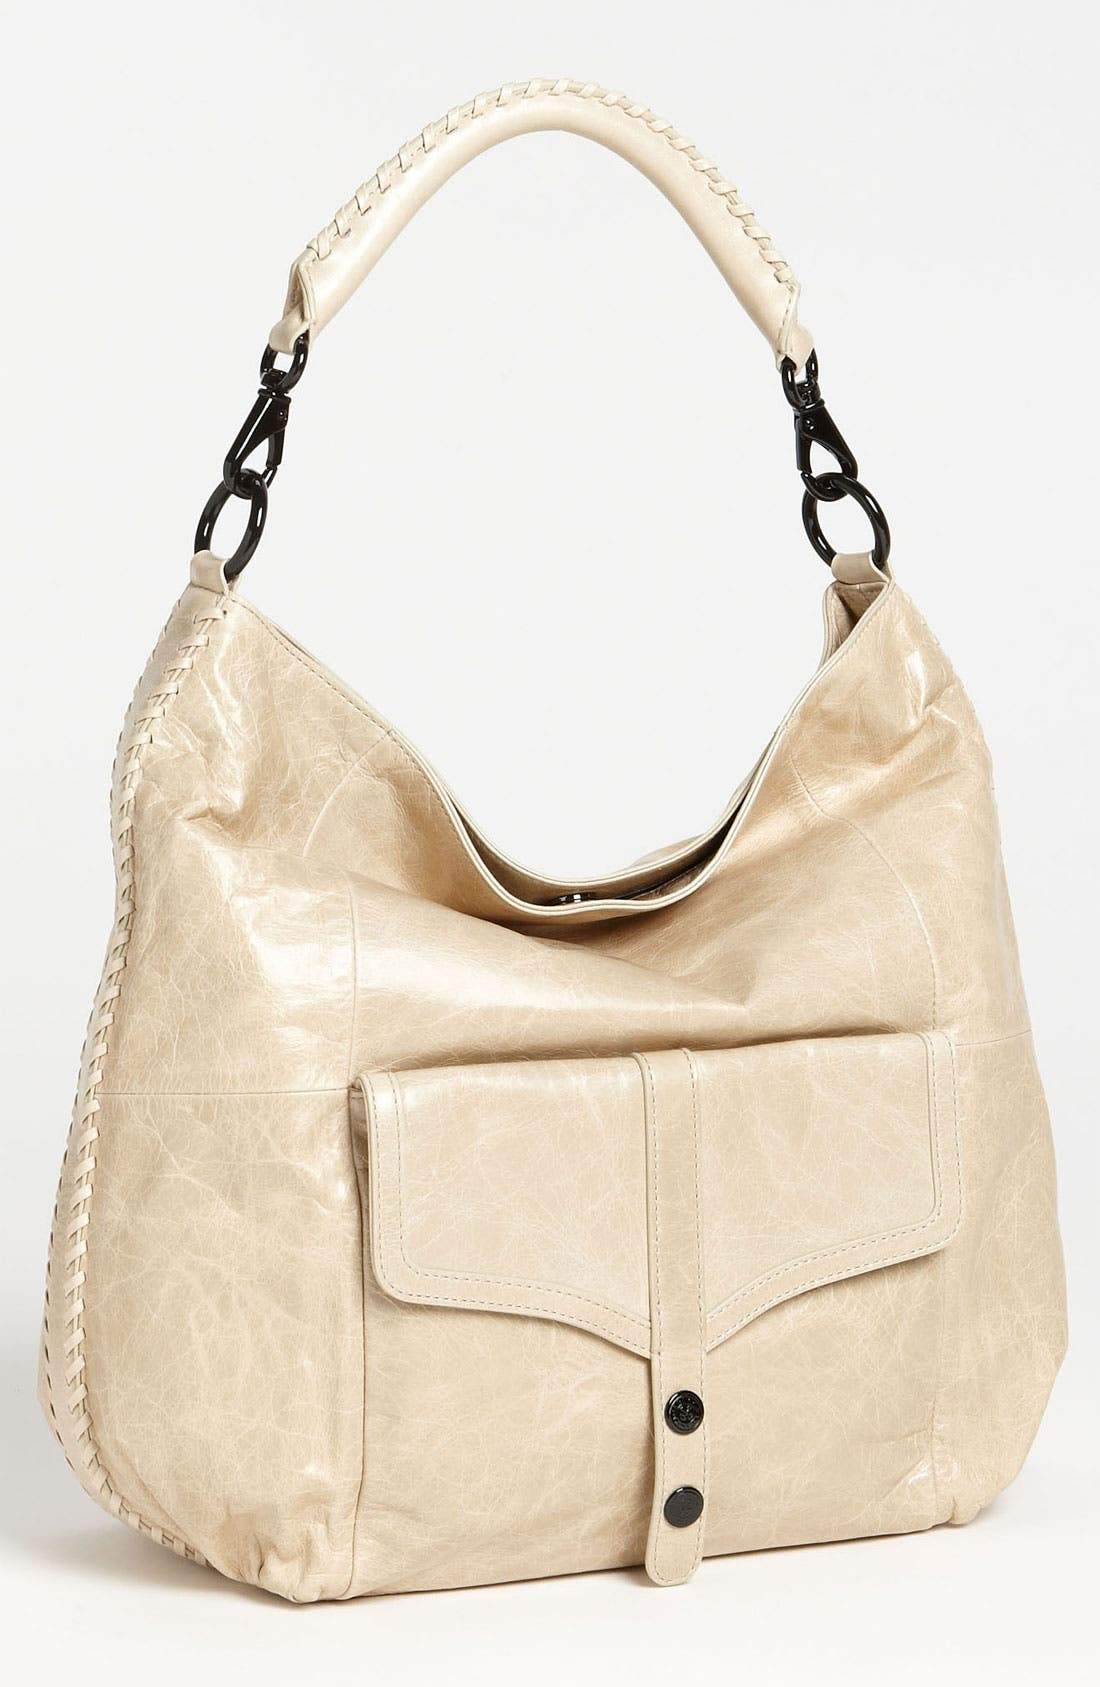 Alternate Image 1 Selected - Rebecca Minkoff 'Drew' Whipstitch Hobo